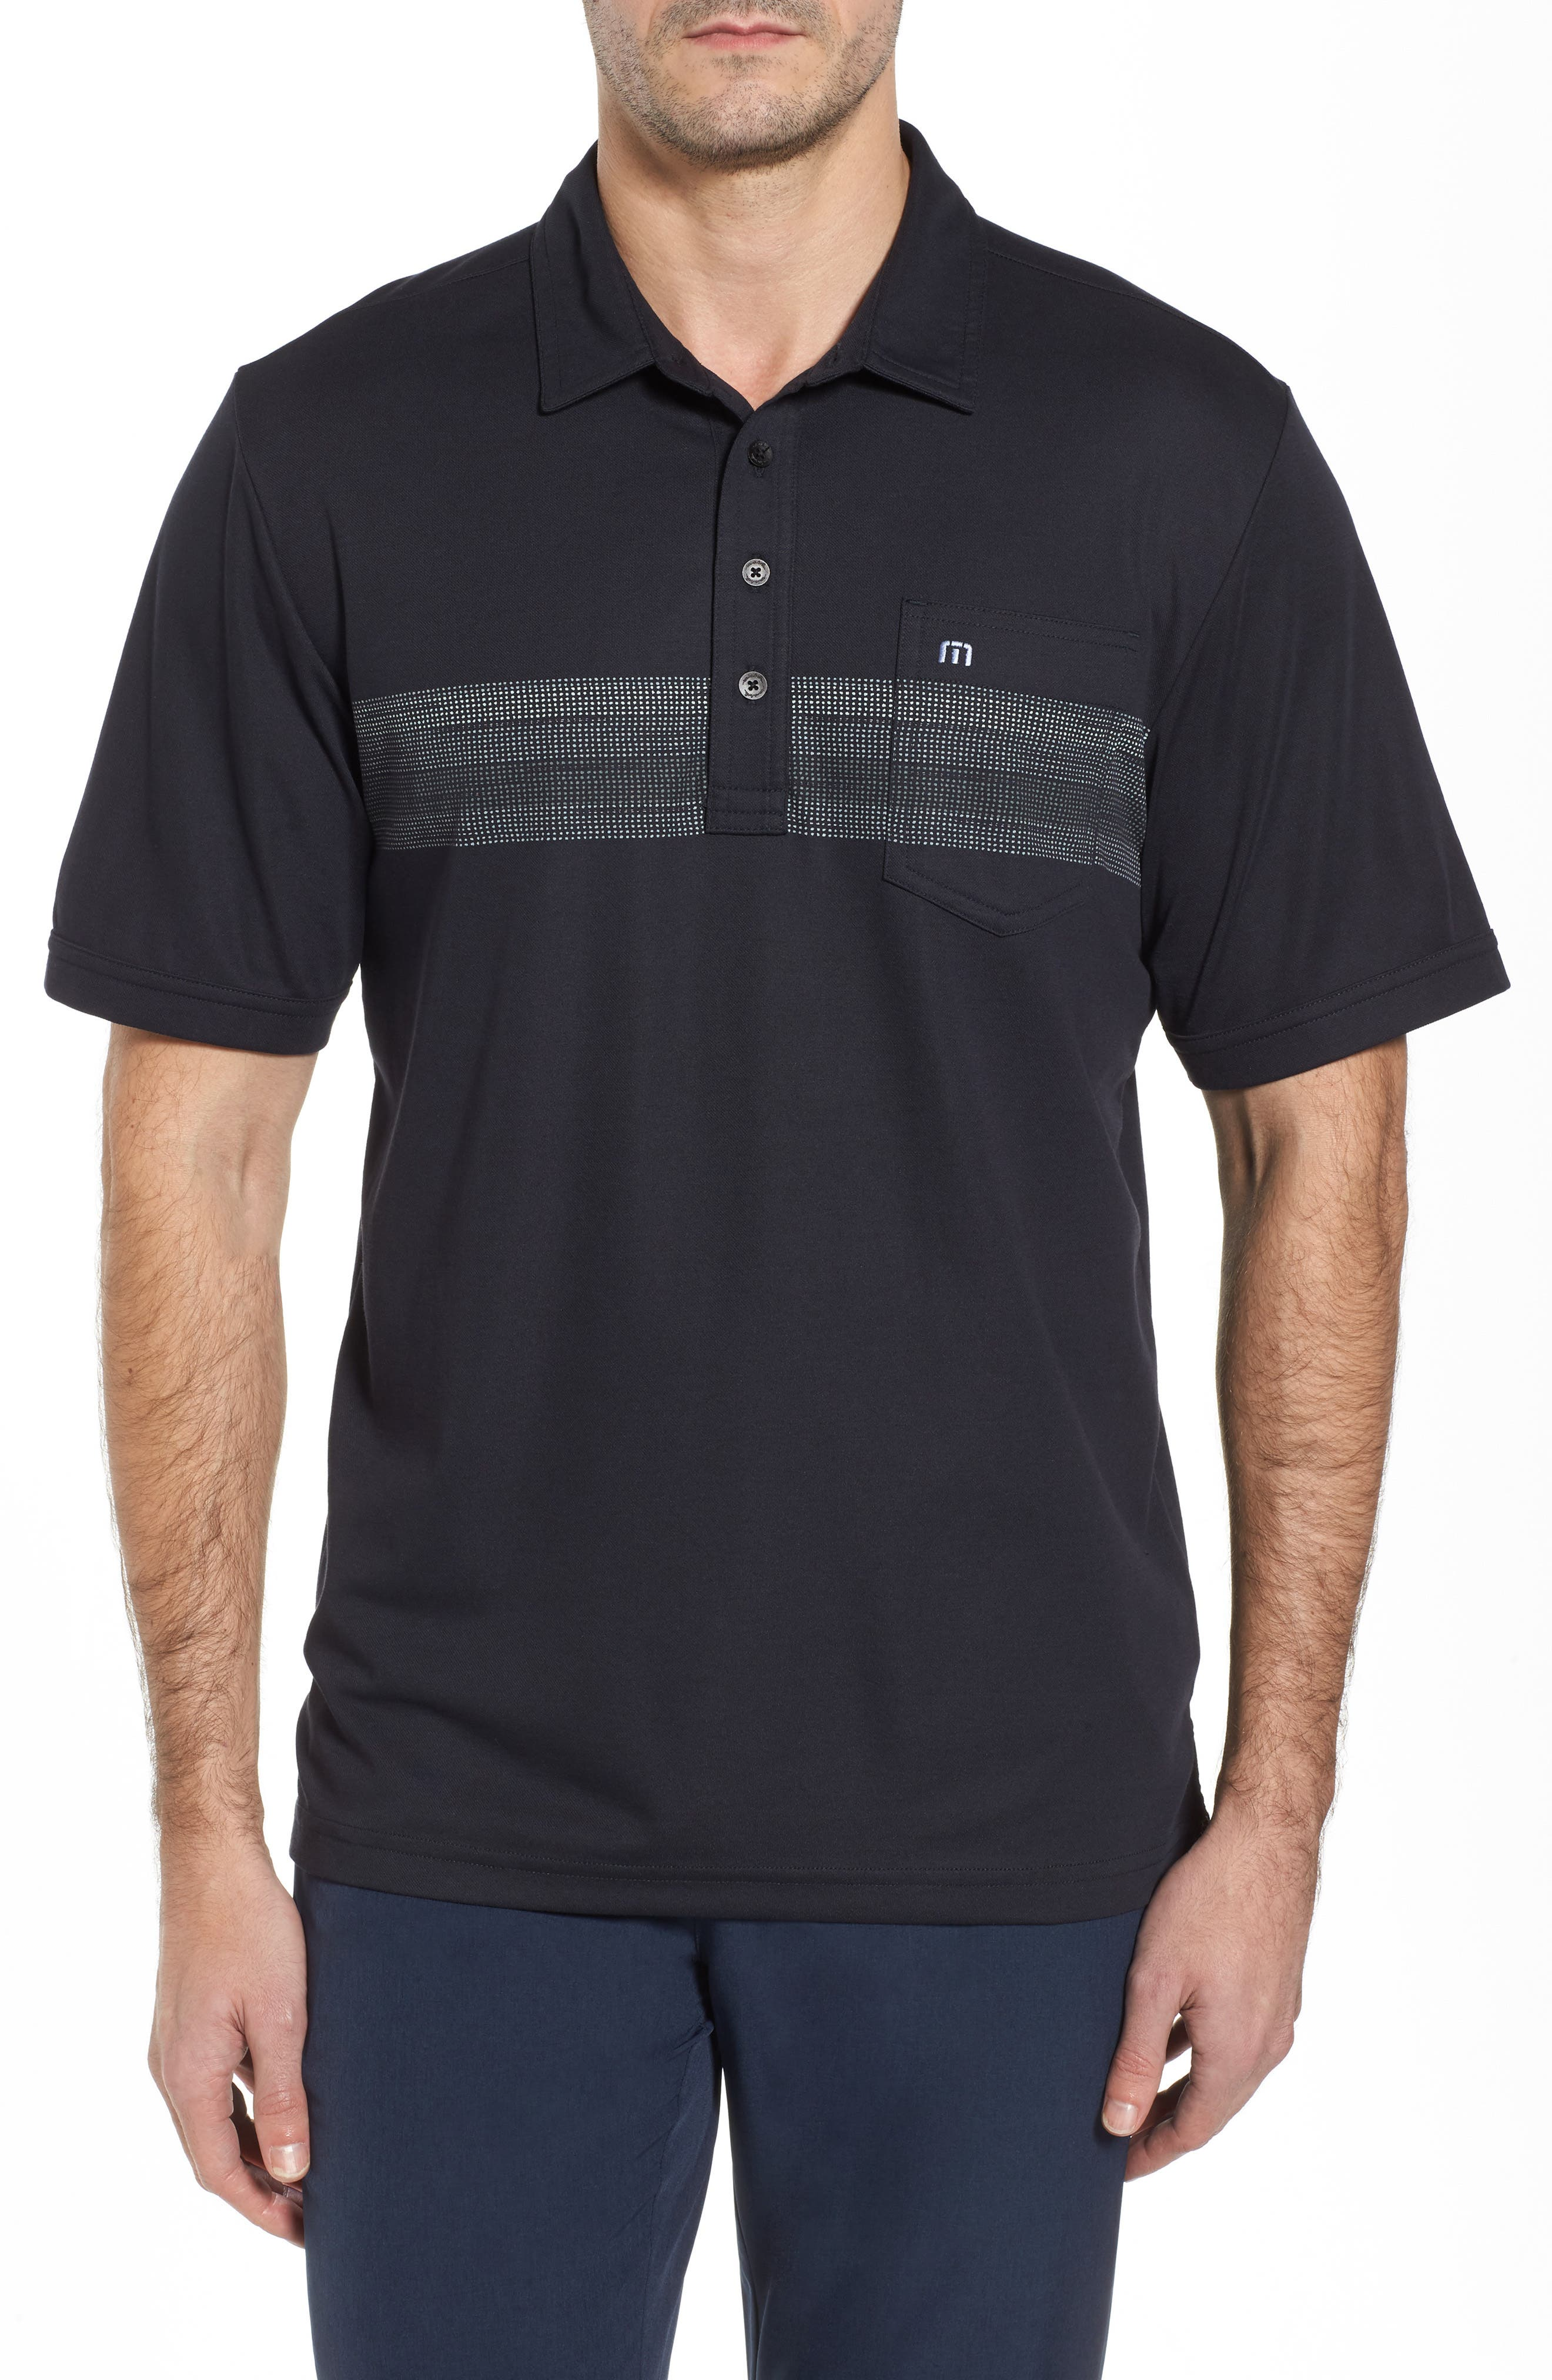 Alternate Image 1 Selected - Travis Mathew Frisch Chest Stripe Polo